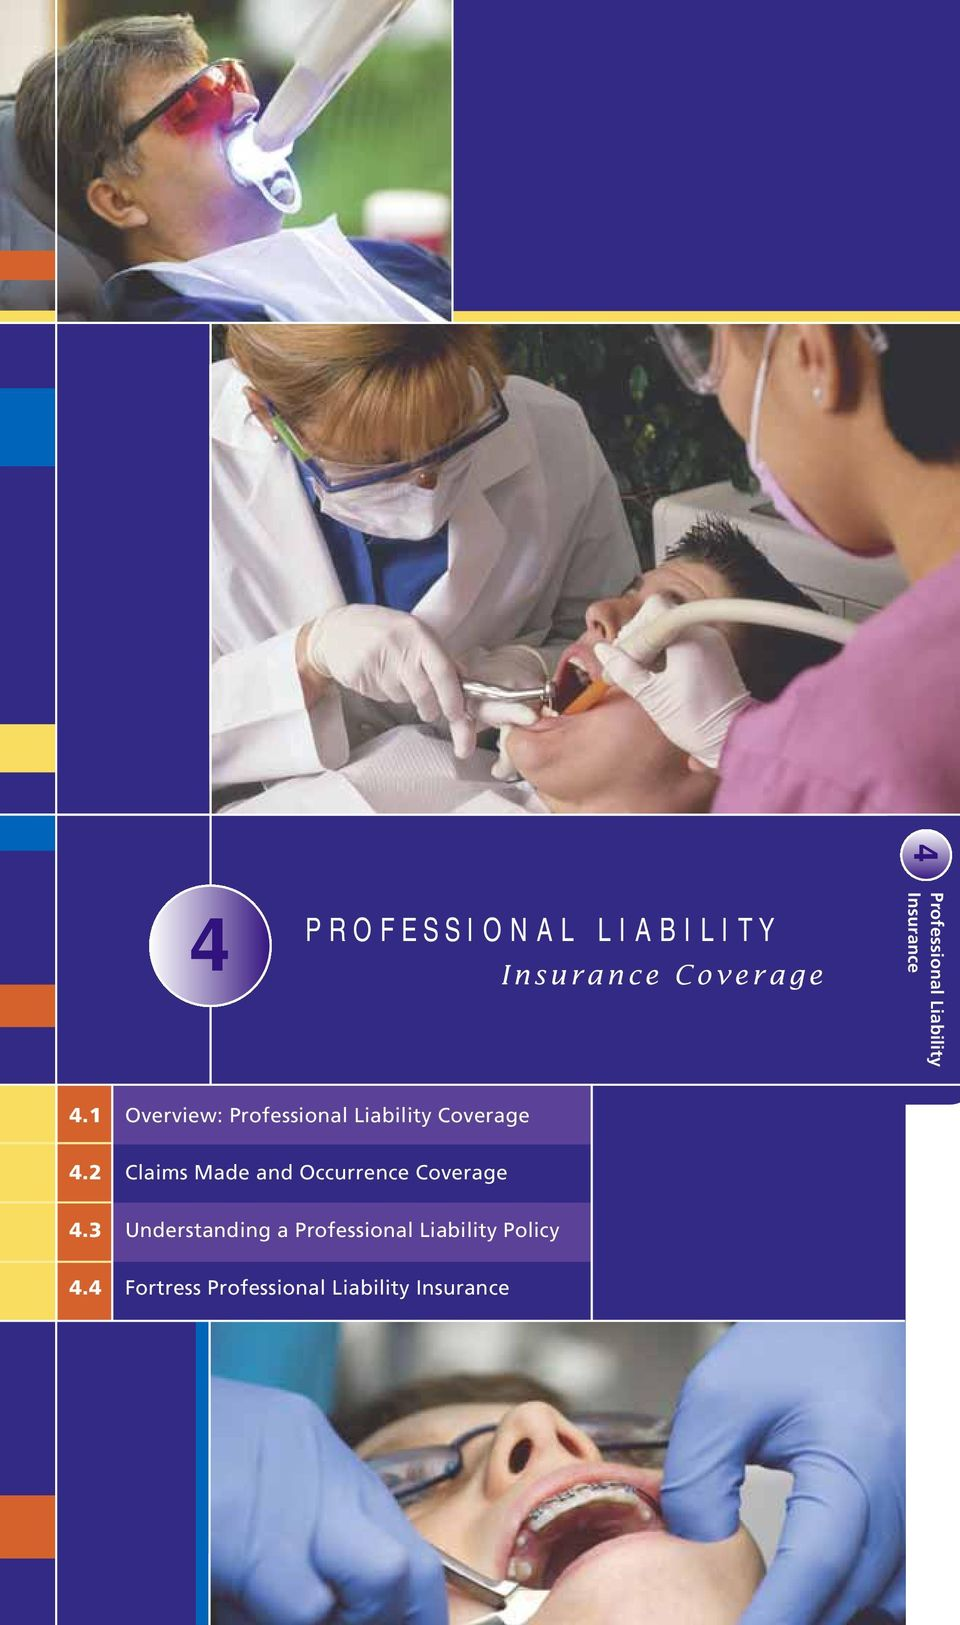 1 Overview: Professional Liability Coverage 4.